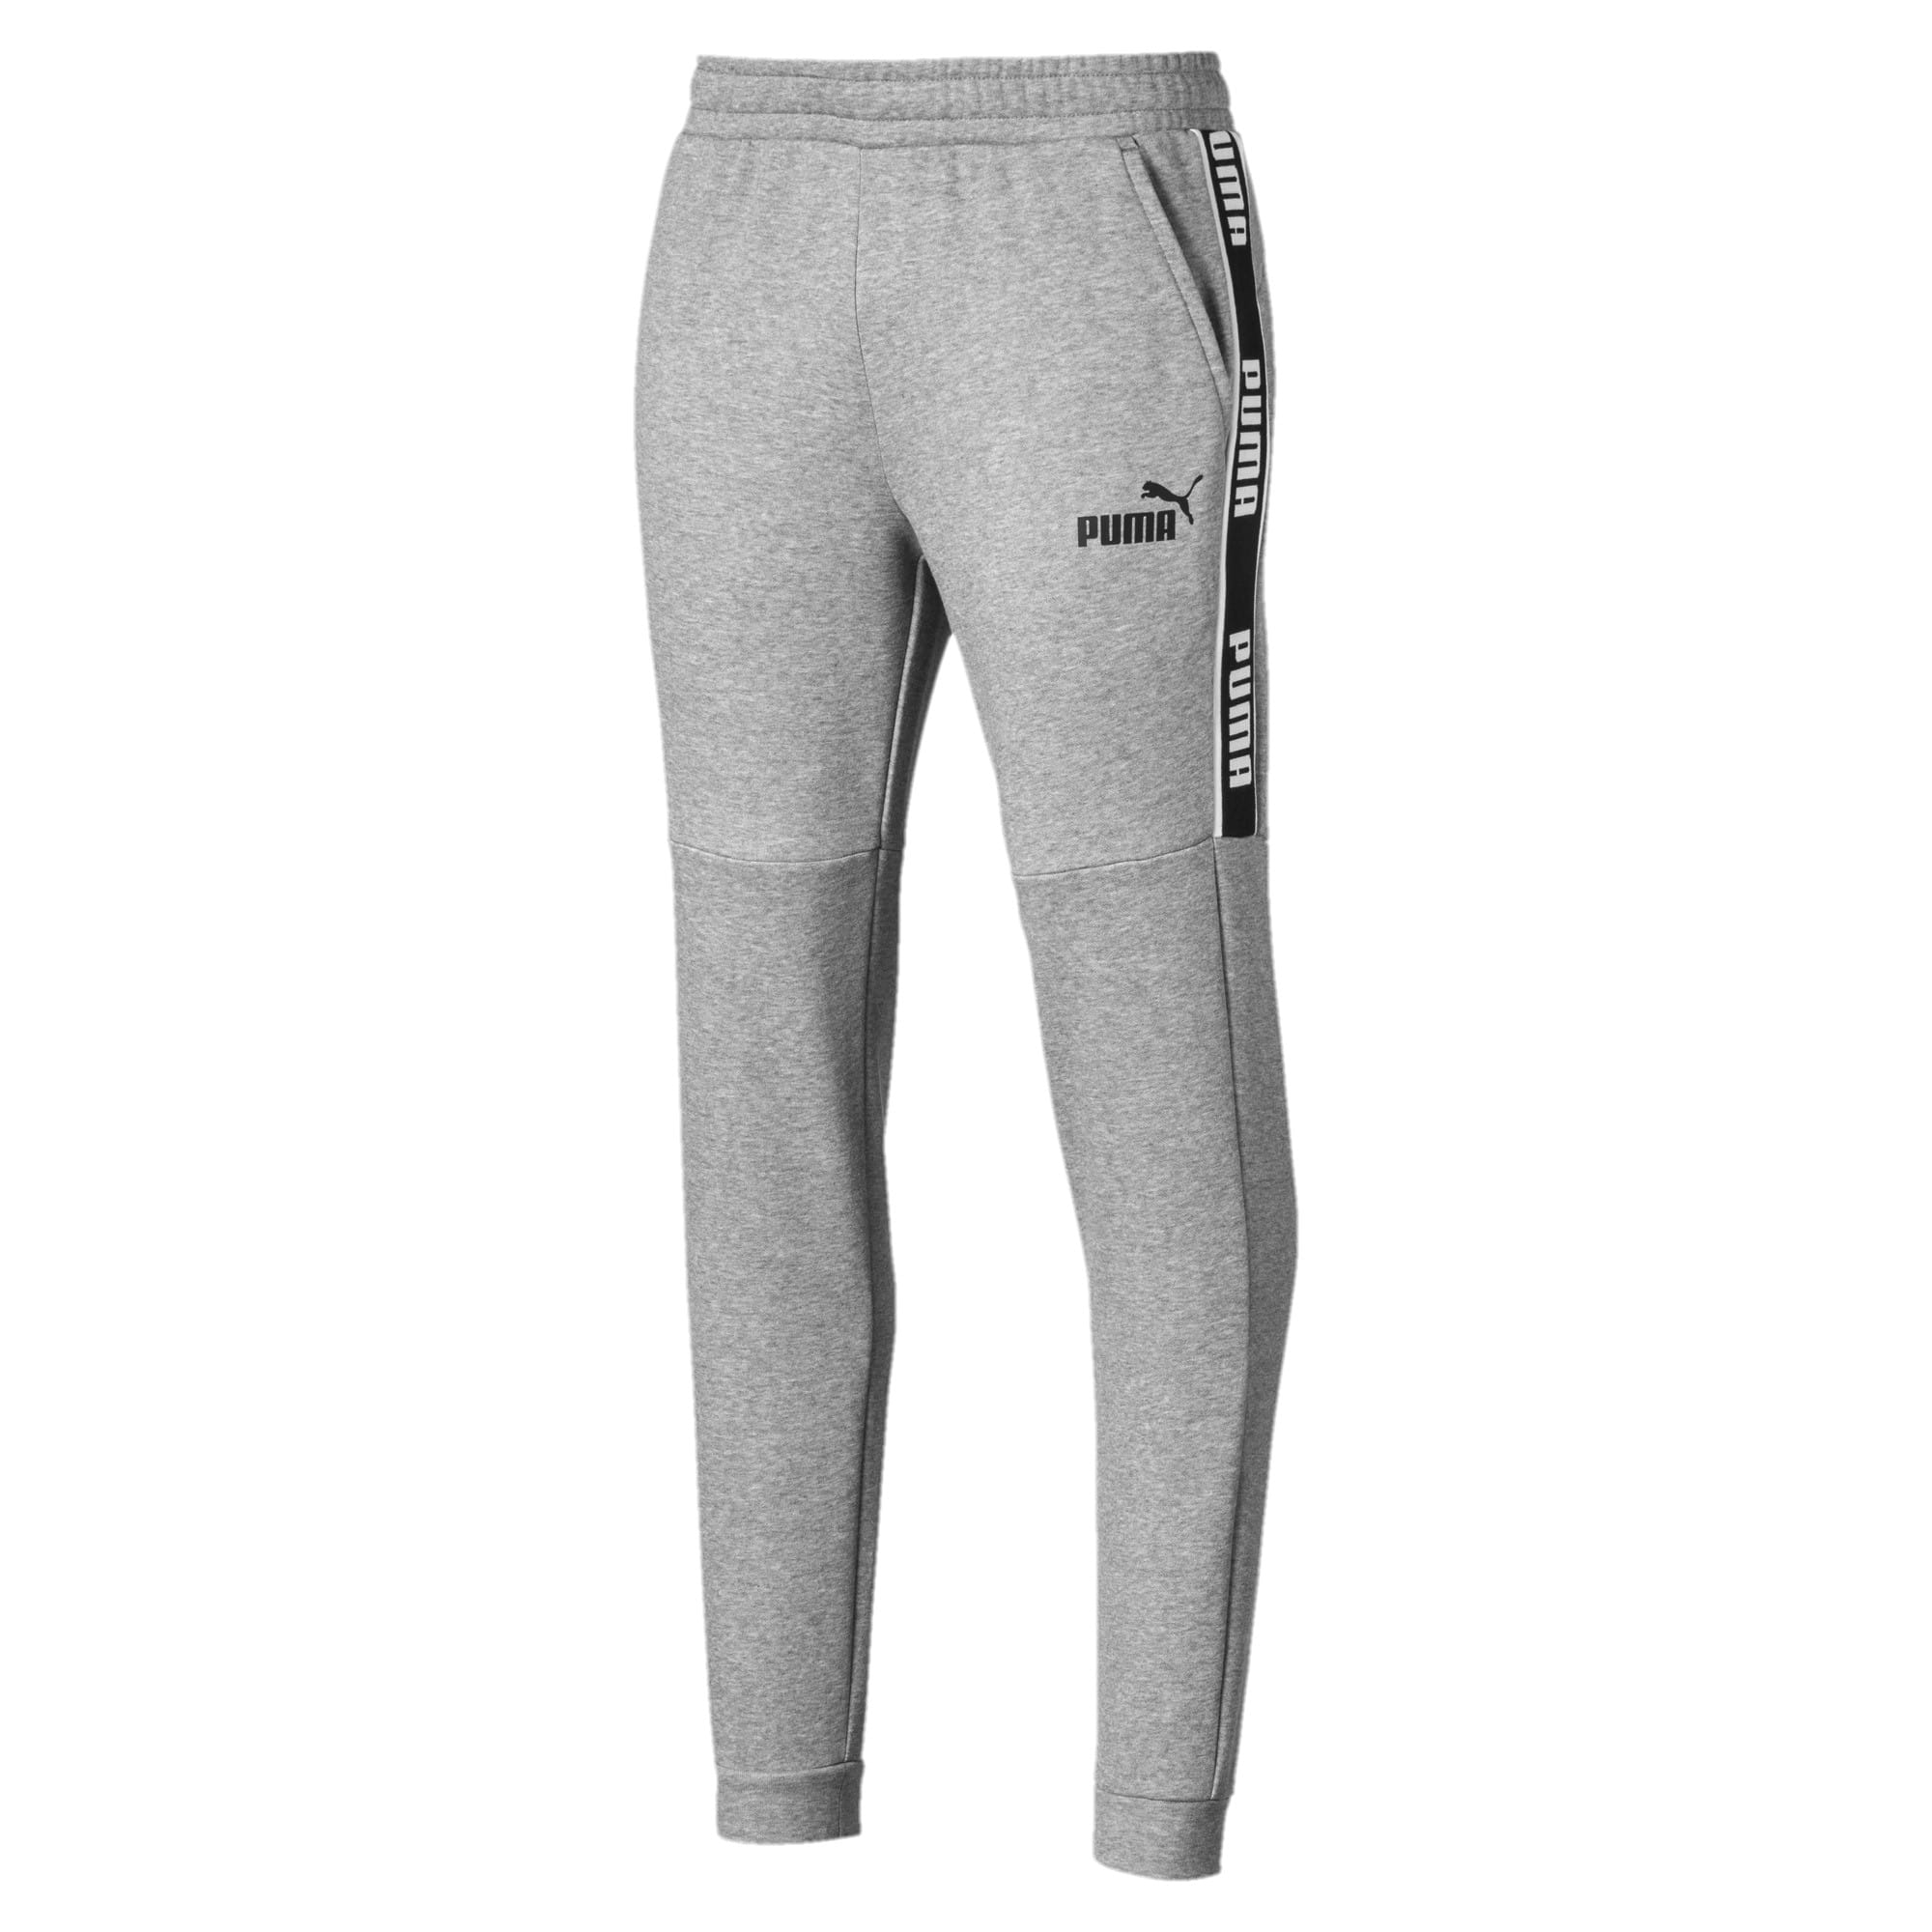 Thumbnail 4 of Amplified Herren Sweatpants, Medium Gray Heather, medium